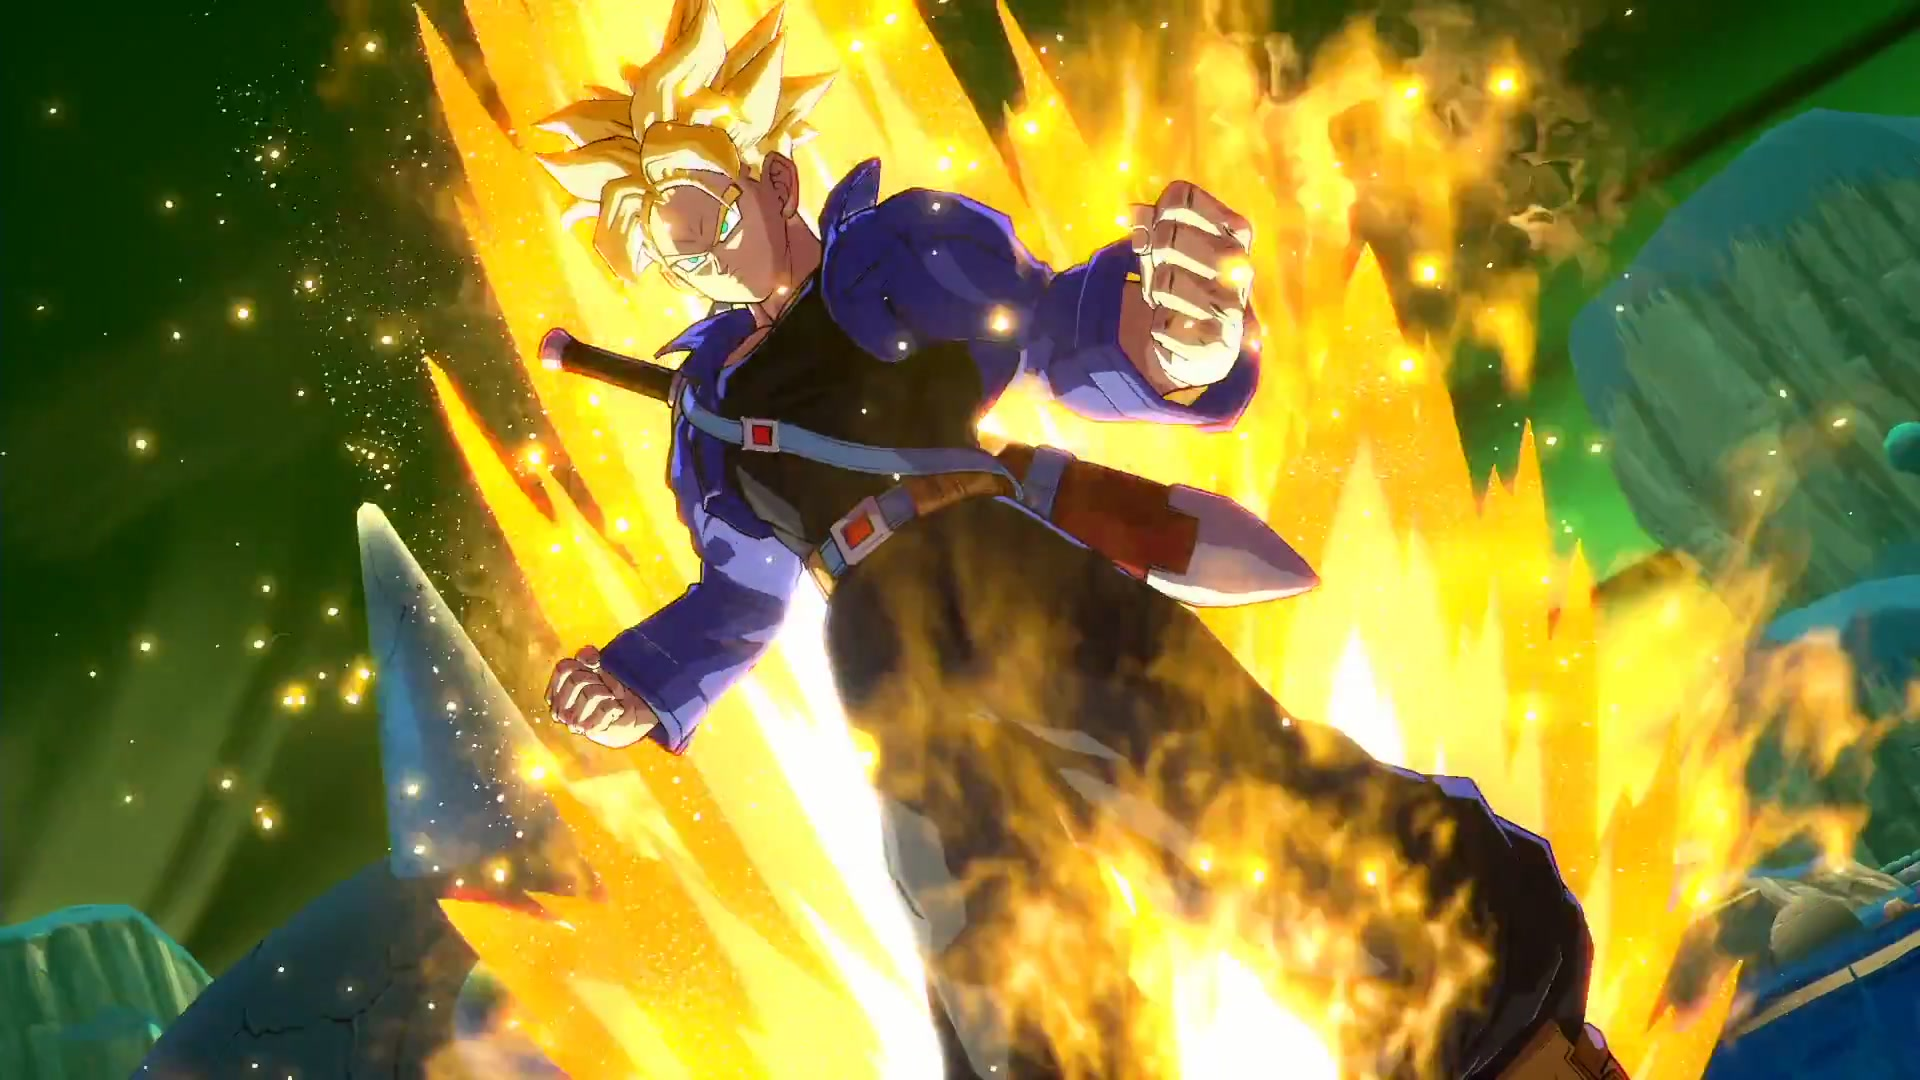 Trunks in Dragon Ball FighterZ 2 out of 12 image gallery